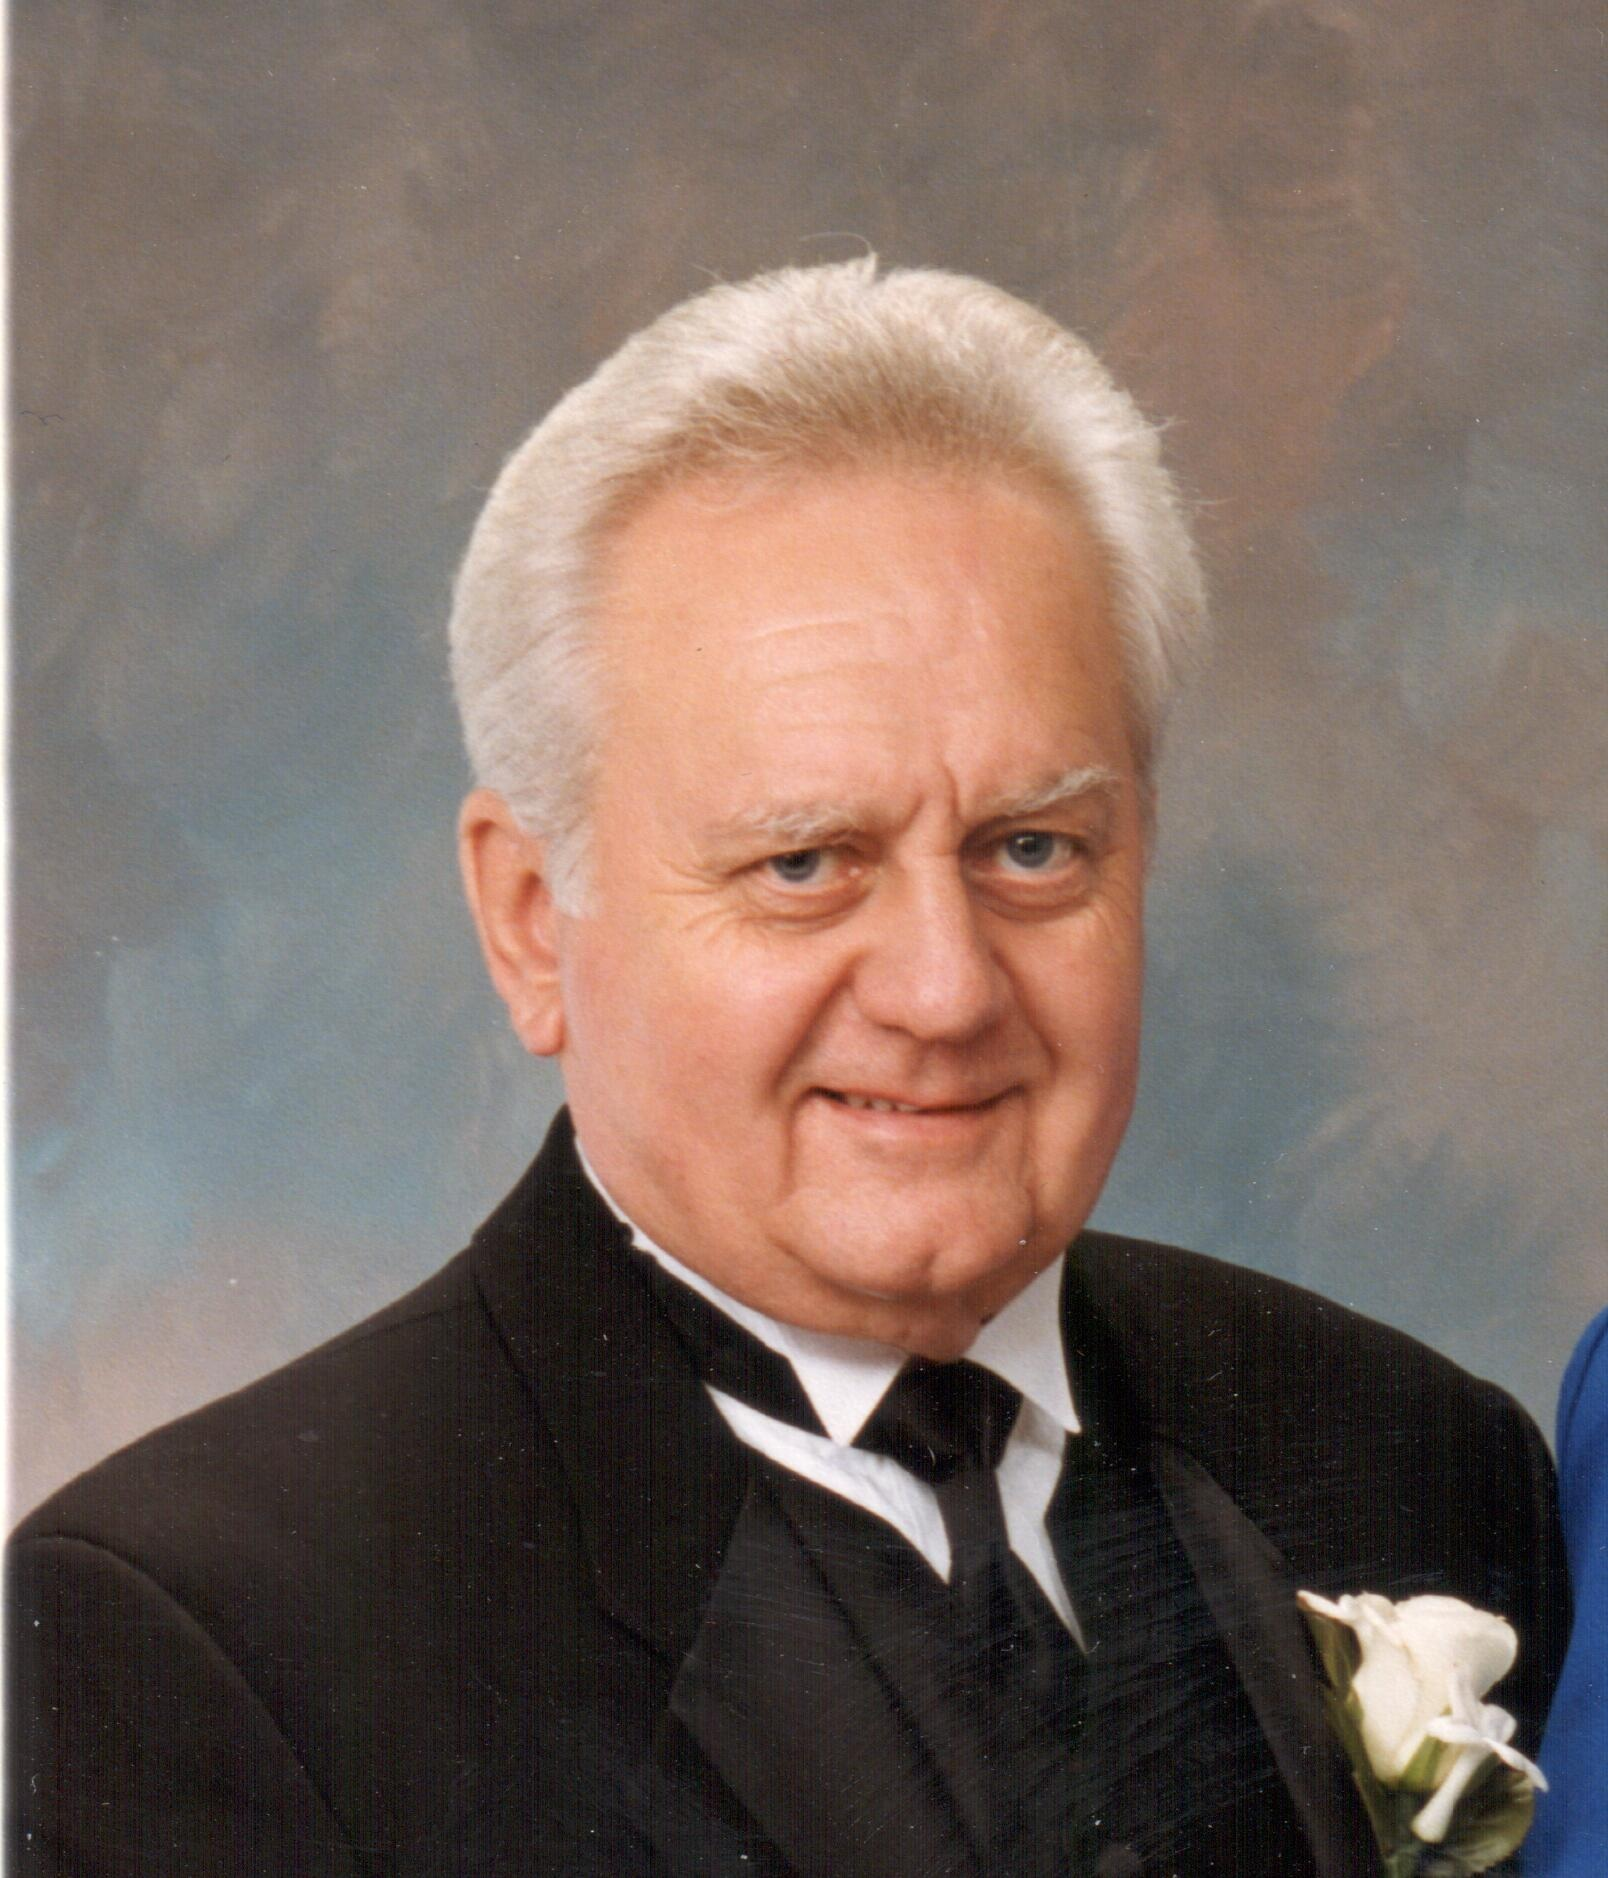 Donald L. Werner, age 81 of Jasper